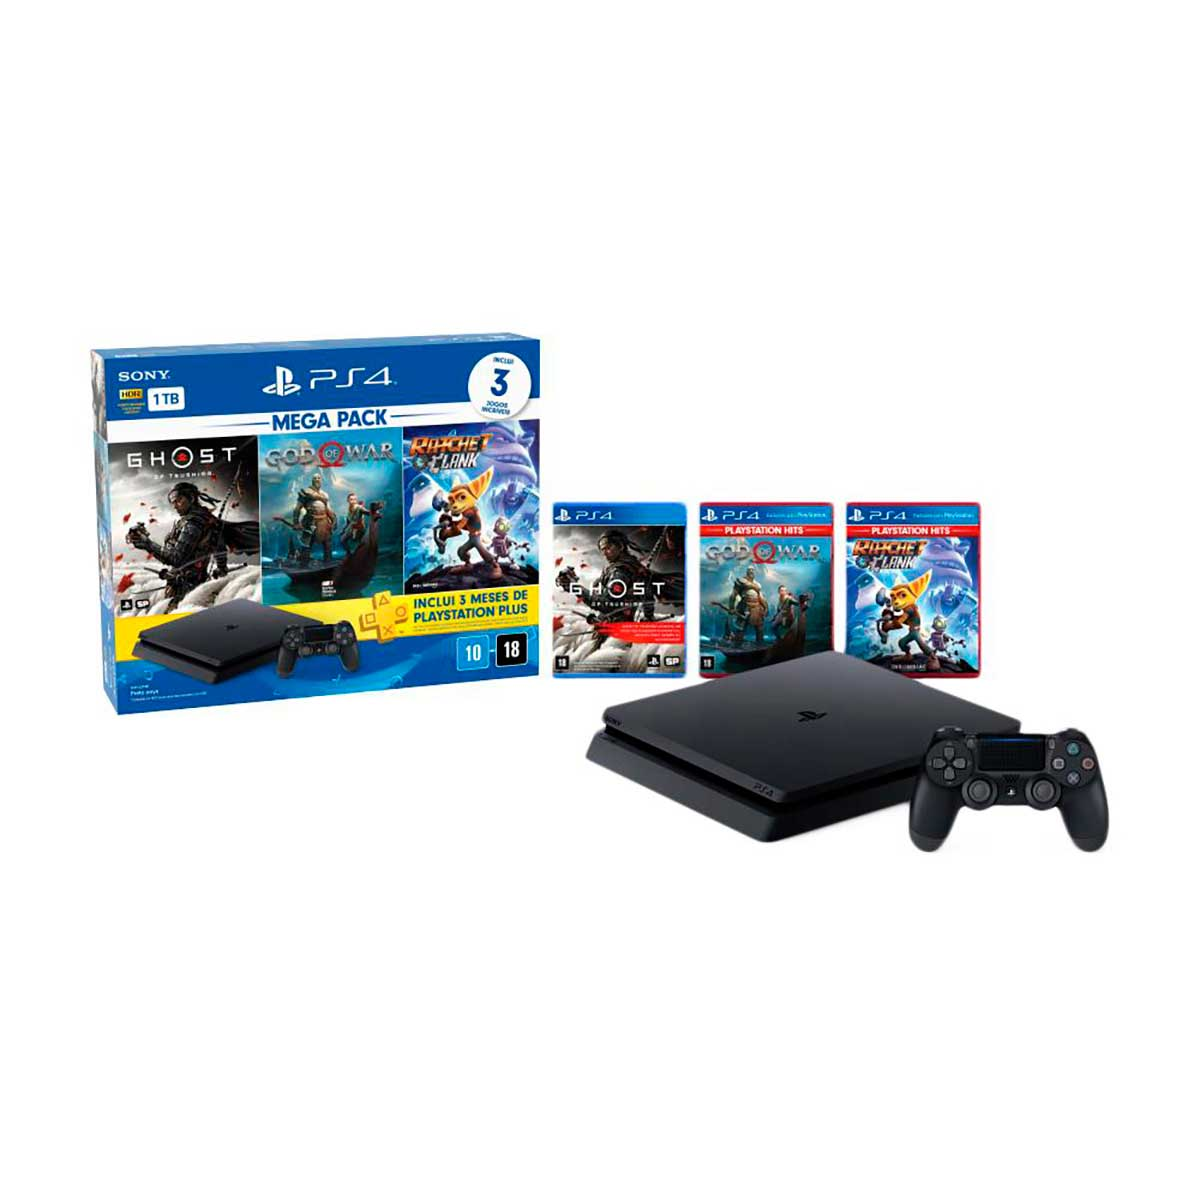 Console Playstation 4 Megapack 18